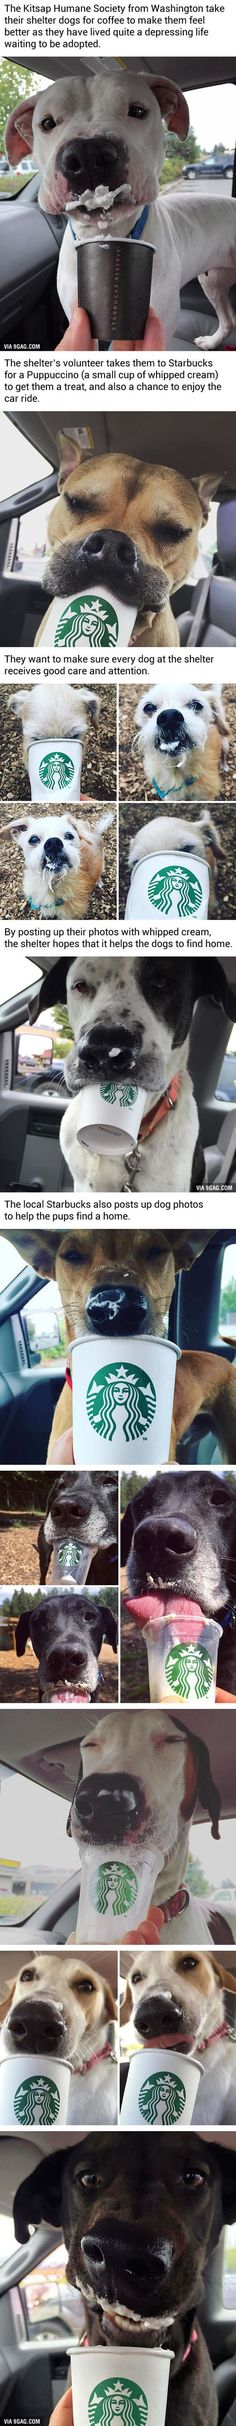 """Honestly, this bring joy to my heart. Love these pups ❤️ Look at 'em, enjoying their Puppuccinos! Shelter Takes Dogs For """"Puppuccinos"""" To Help Them Find Home Animals And Pets, Baby Animals, Funny Animals, Cute Animals, Cute Puppies, Cute Dogs, Dogs And Puppies, Doggies, Chihuahua Dogs"""